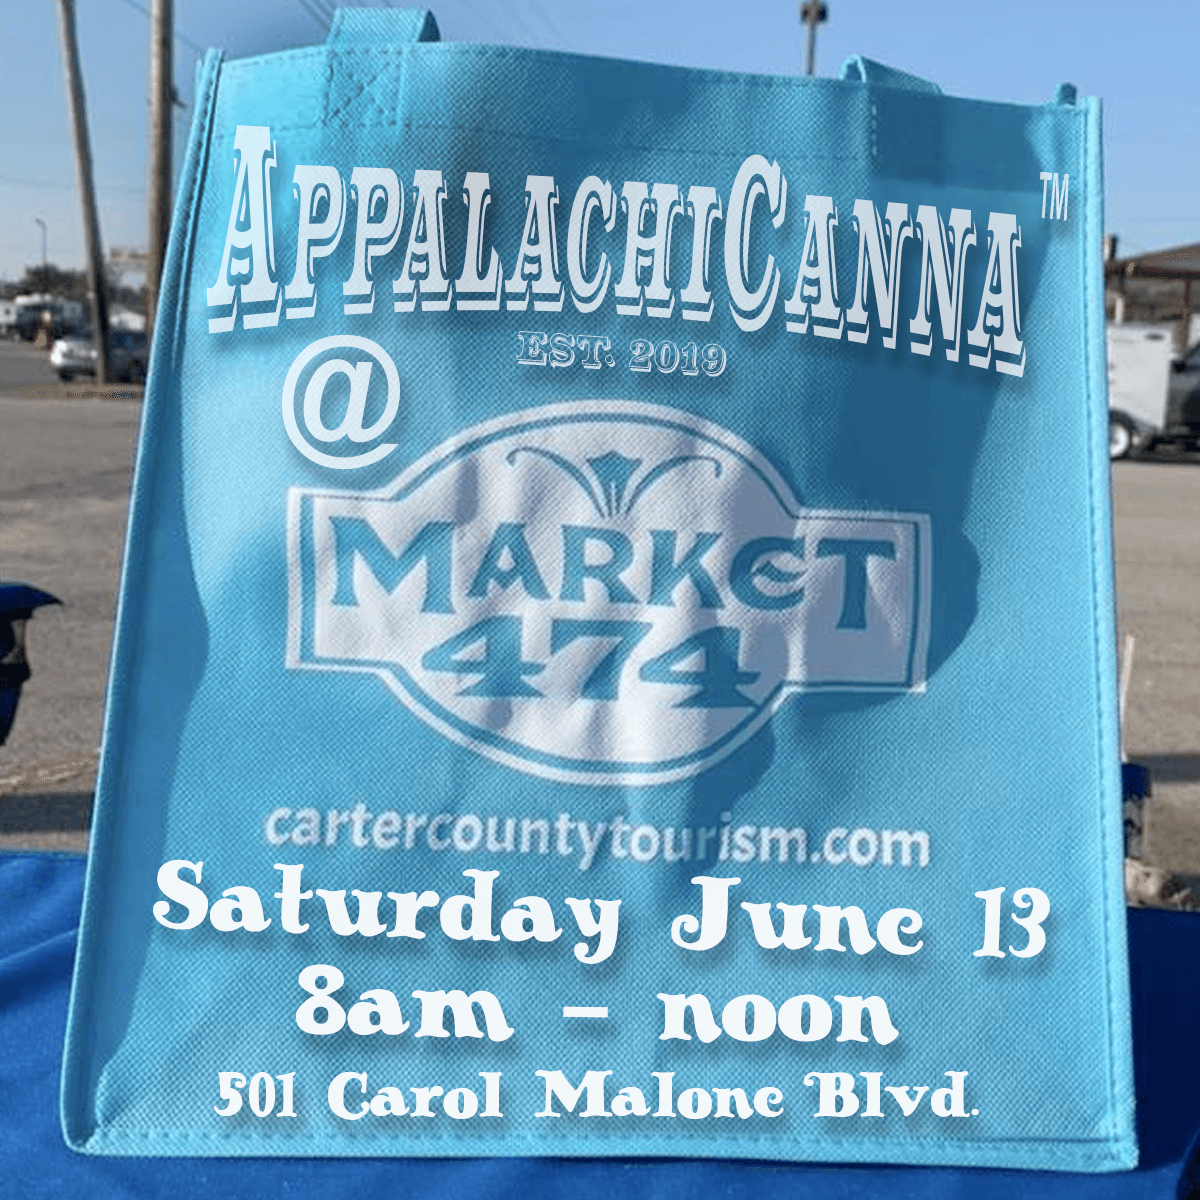 AppalachiCanna will be at Market 474 on Saturday June 13 to promote our products and meet our community. We're excited to be a part of Market 474 and hope you'll stop by to check out our top quality bona fide Kentucky Organic Hemp and CBD products